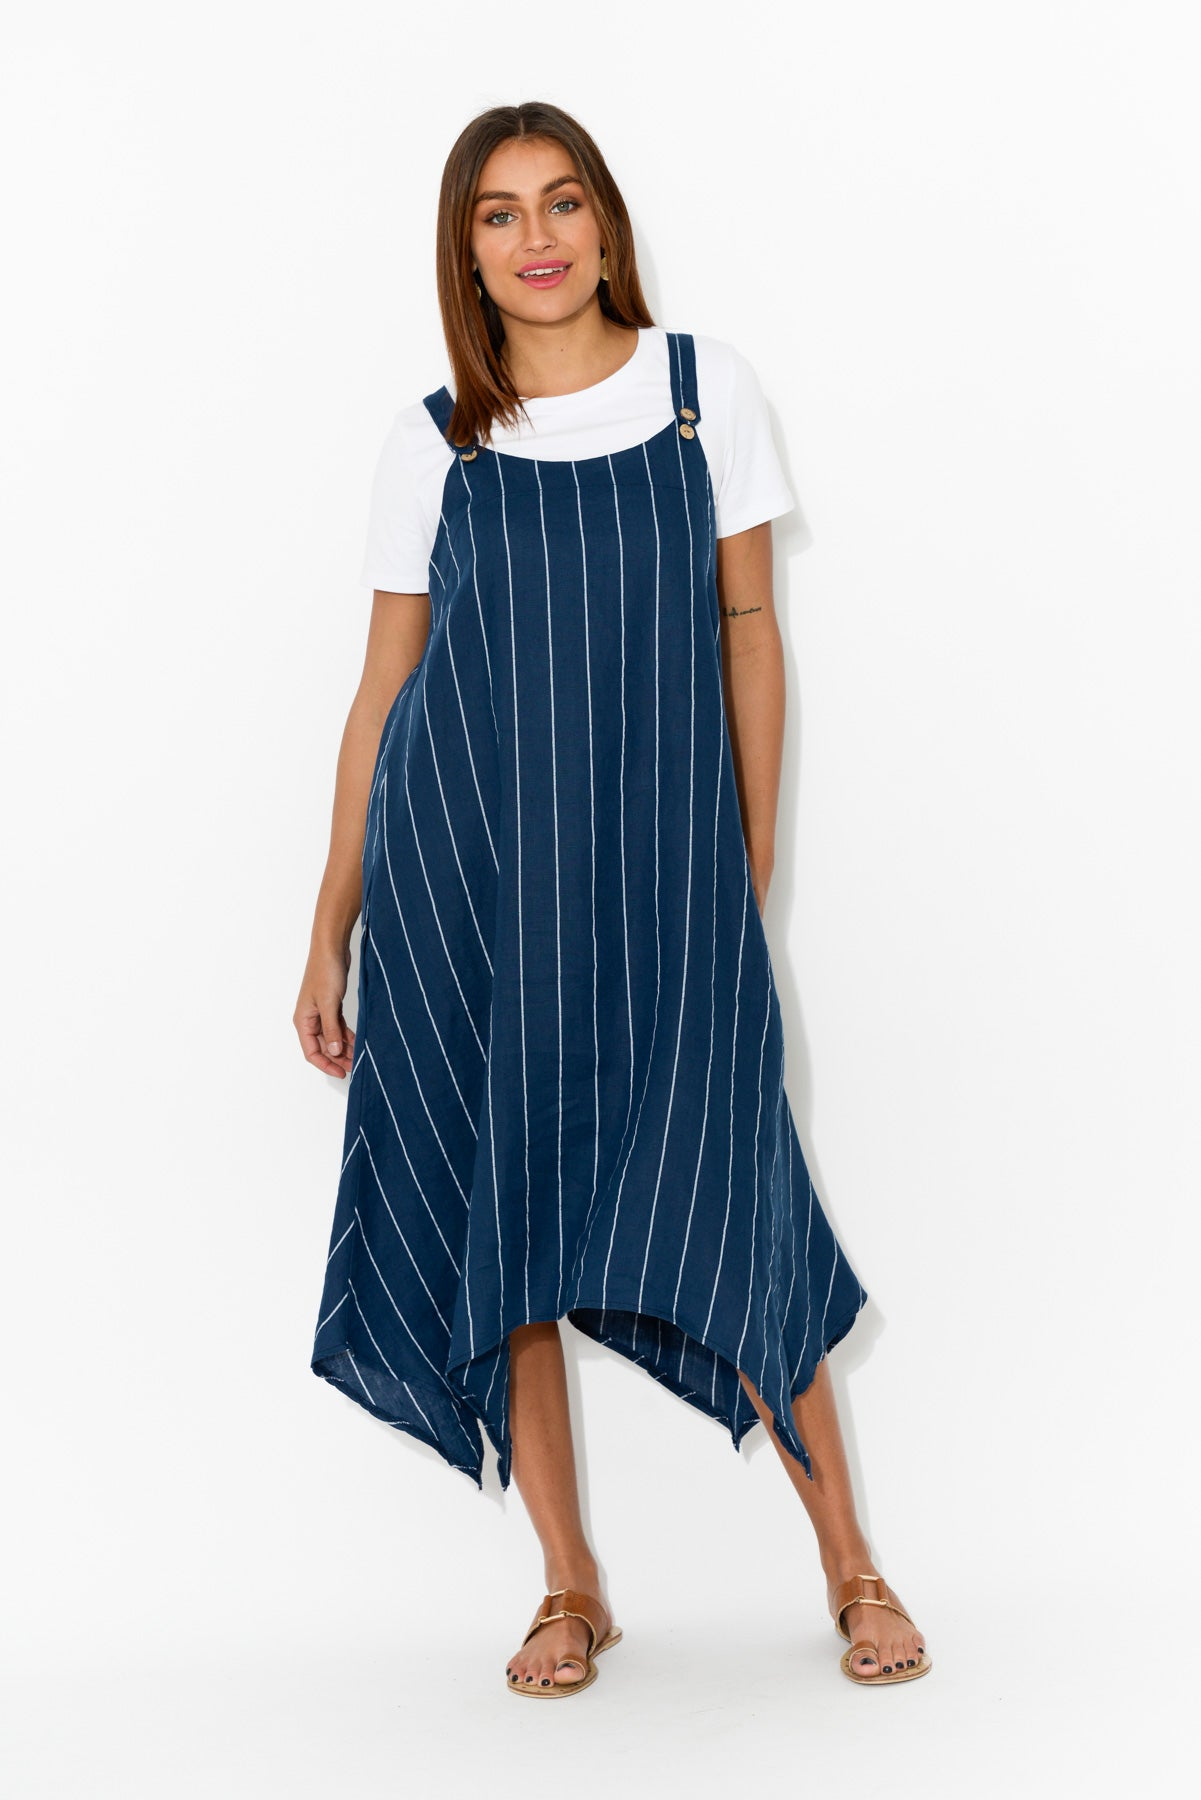 Navy Stripe Linen Pinafore Dress - Blue Bungalow